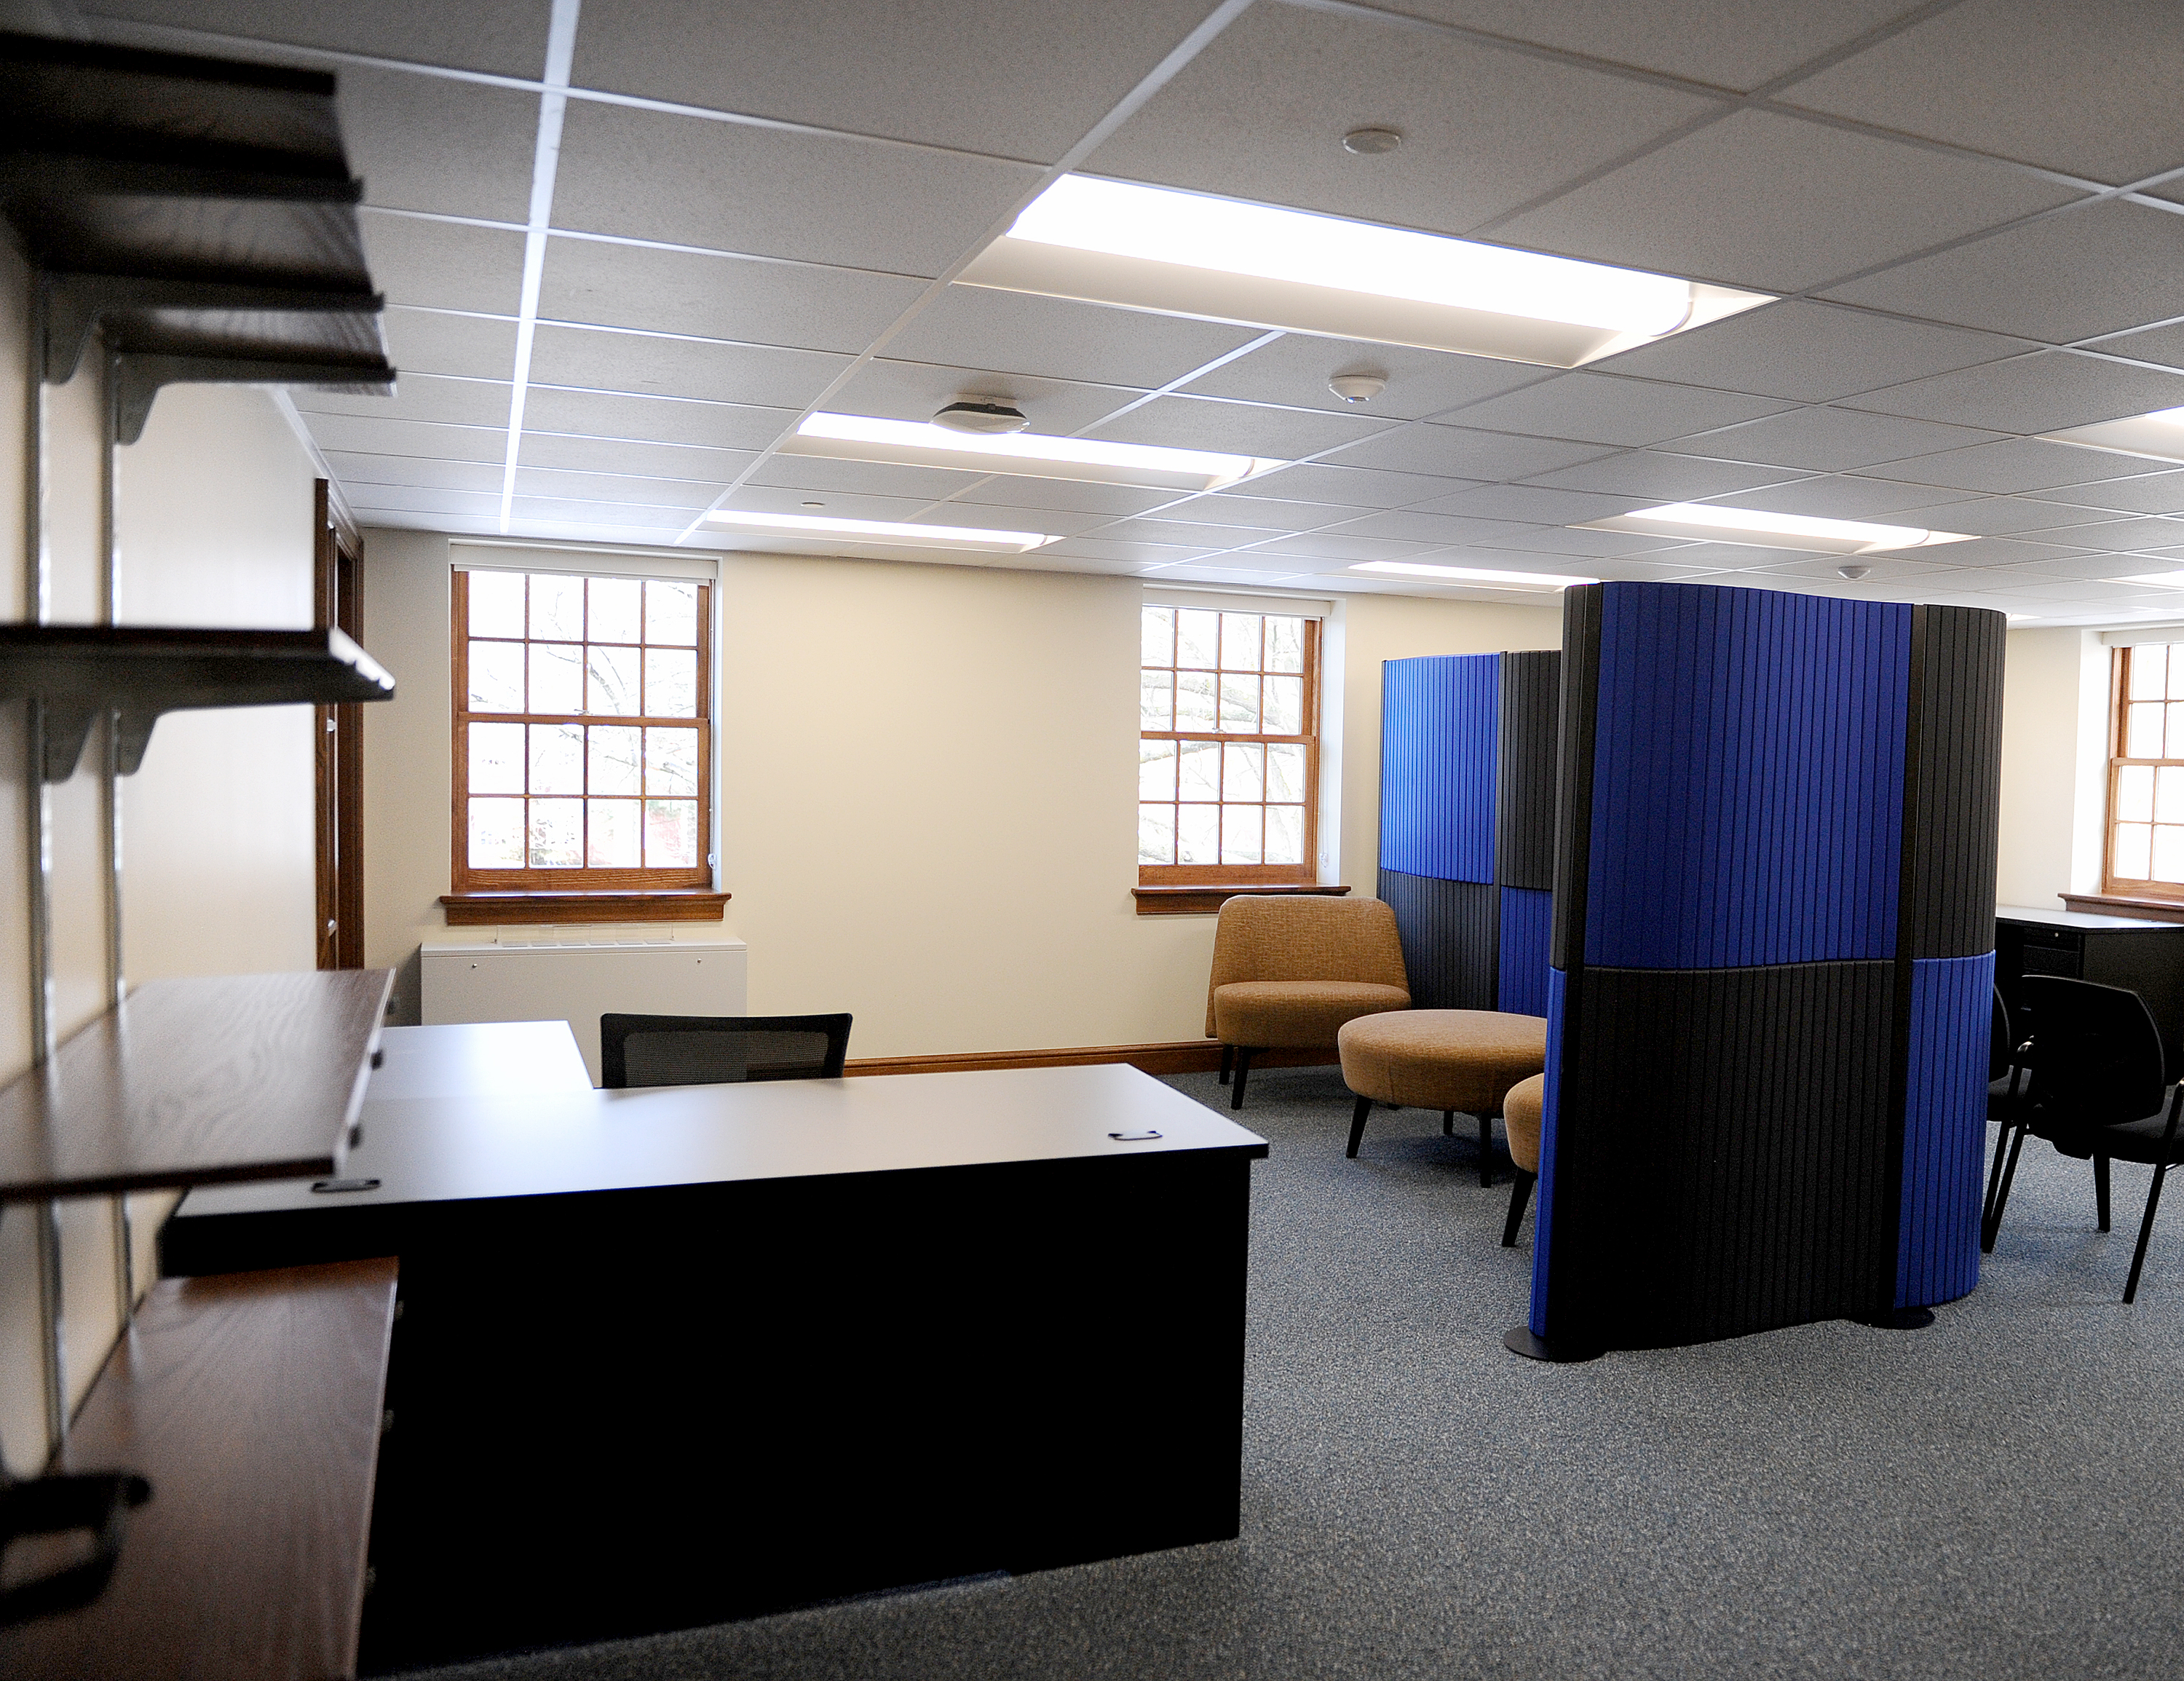 One of the new offices at Hildreth-Mirza Hall at Bucknell University.